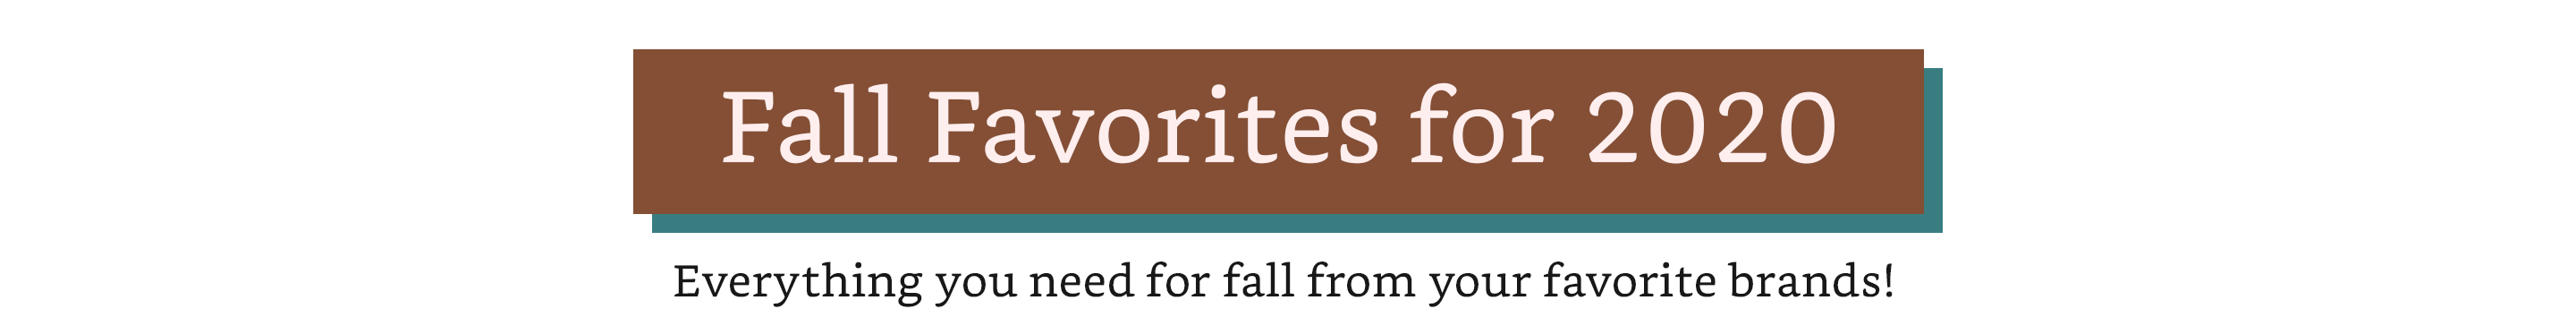 Fall Favorites for 2020